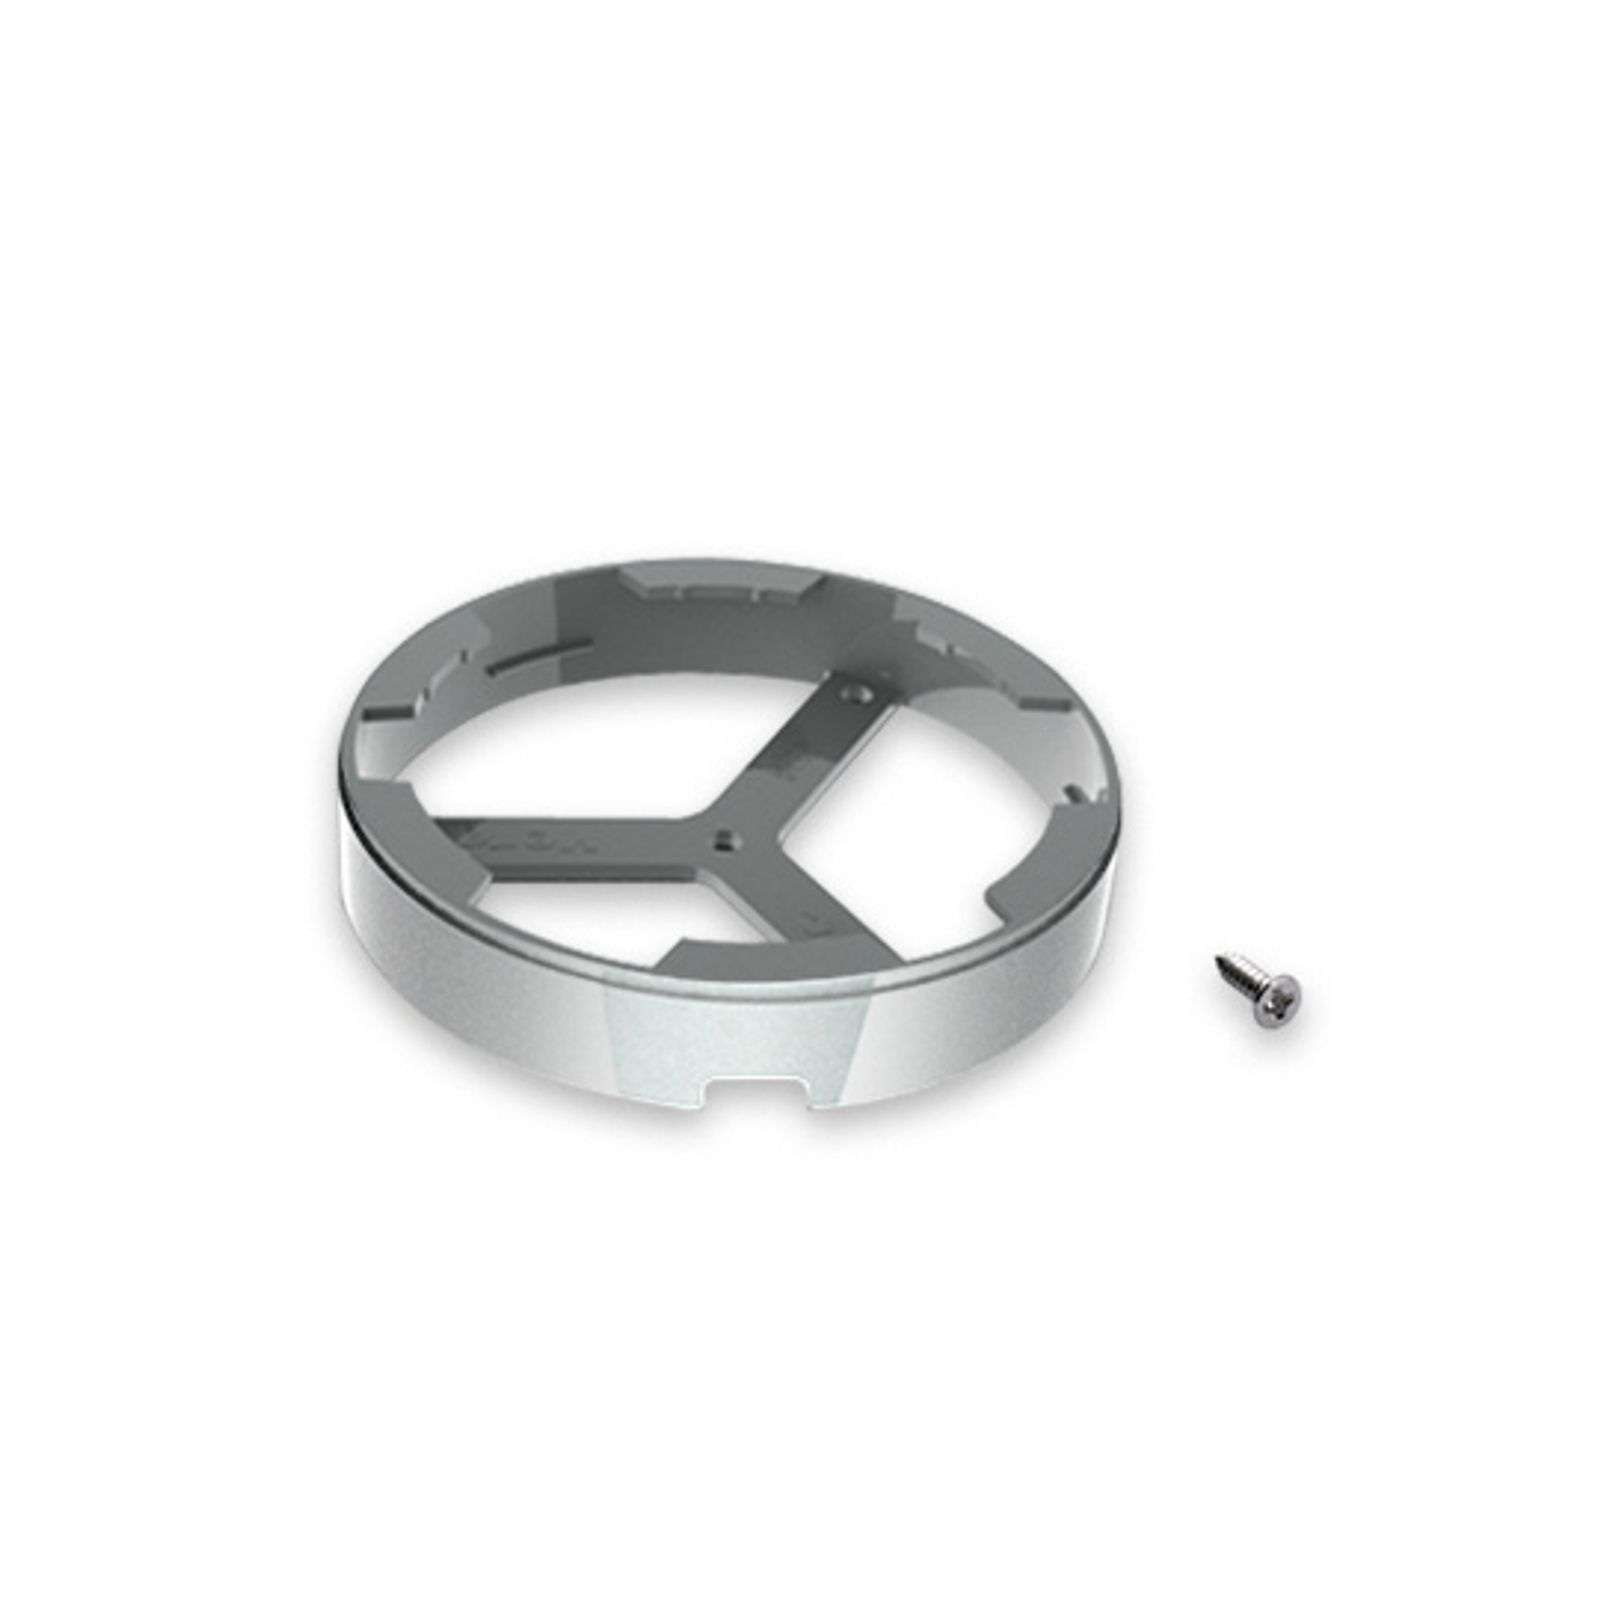 Image of Assembly Ring for R 68 LED recessed light, ss